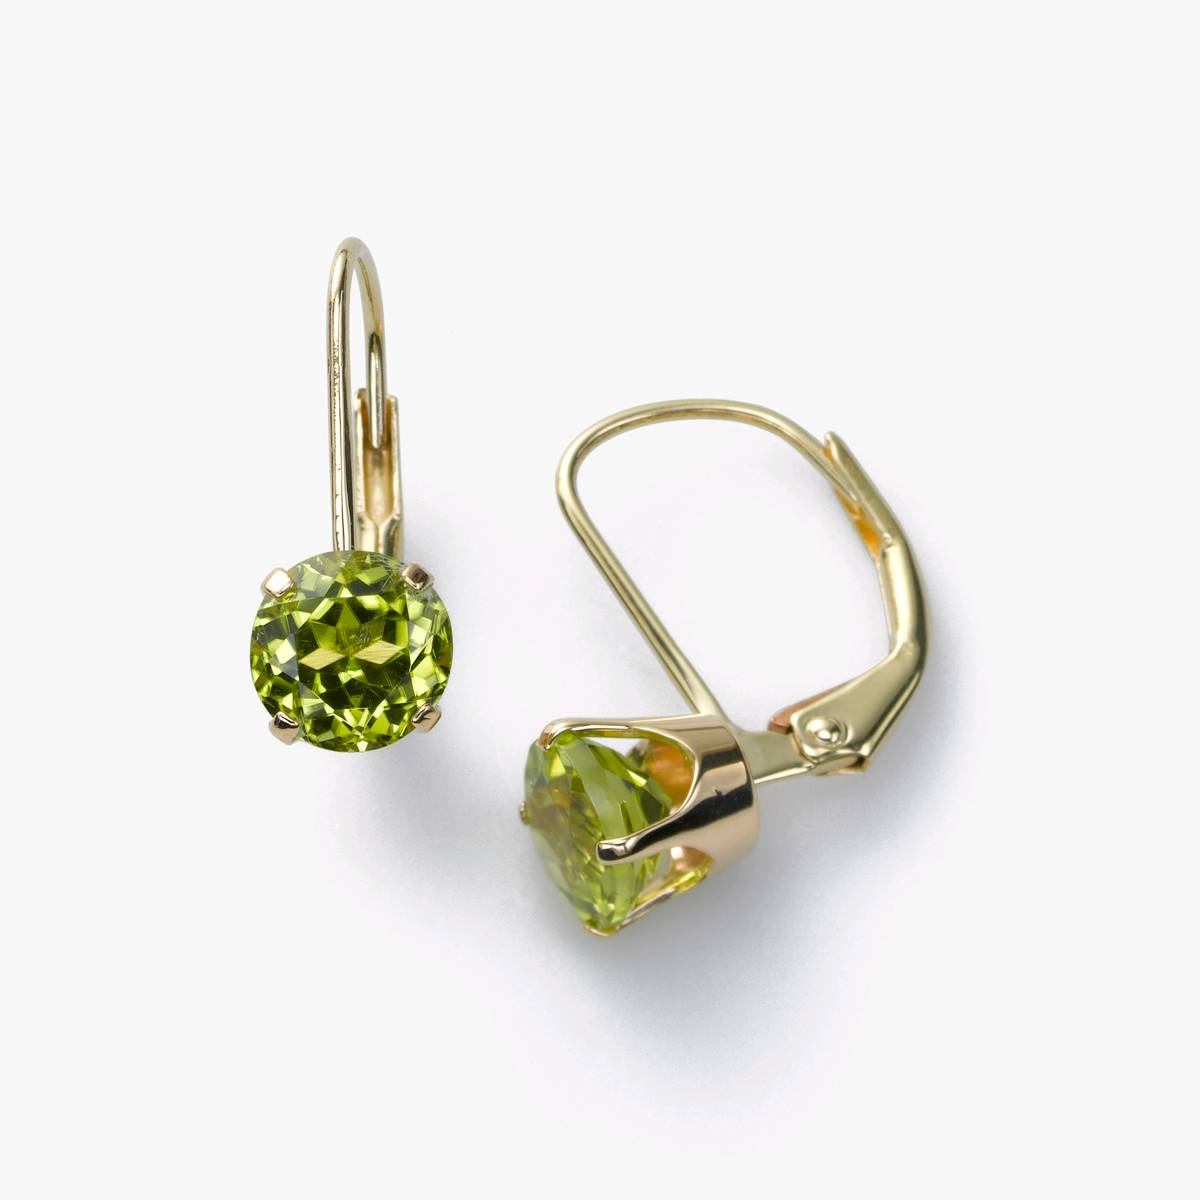 Peridot Leverback Earring, 14K Yellow Gold